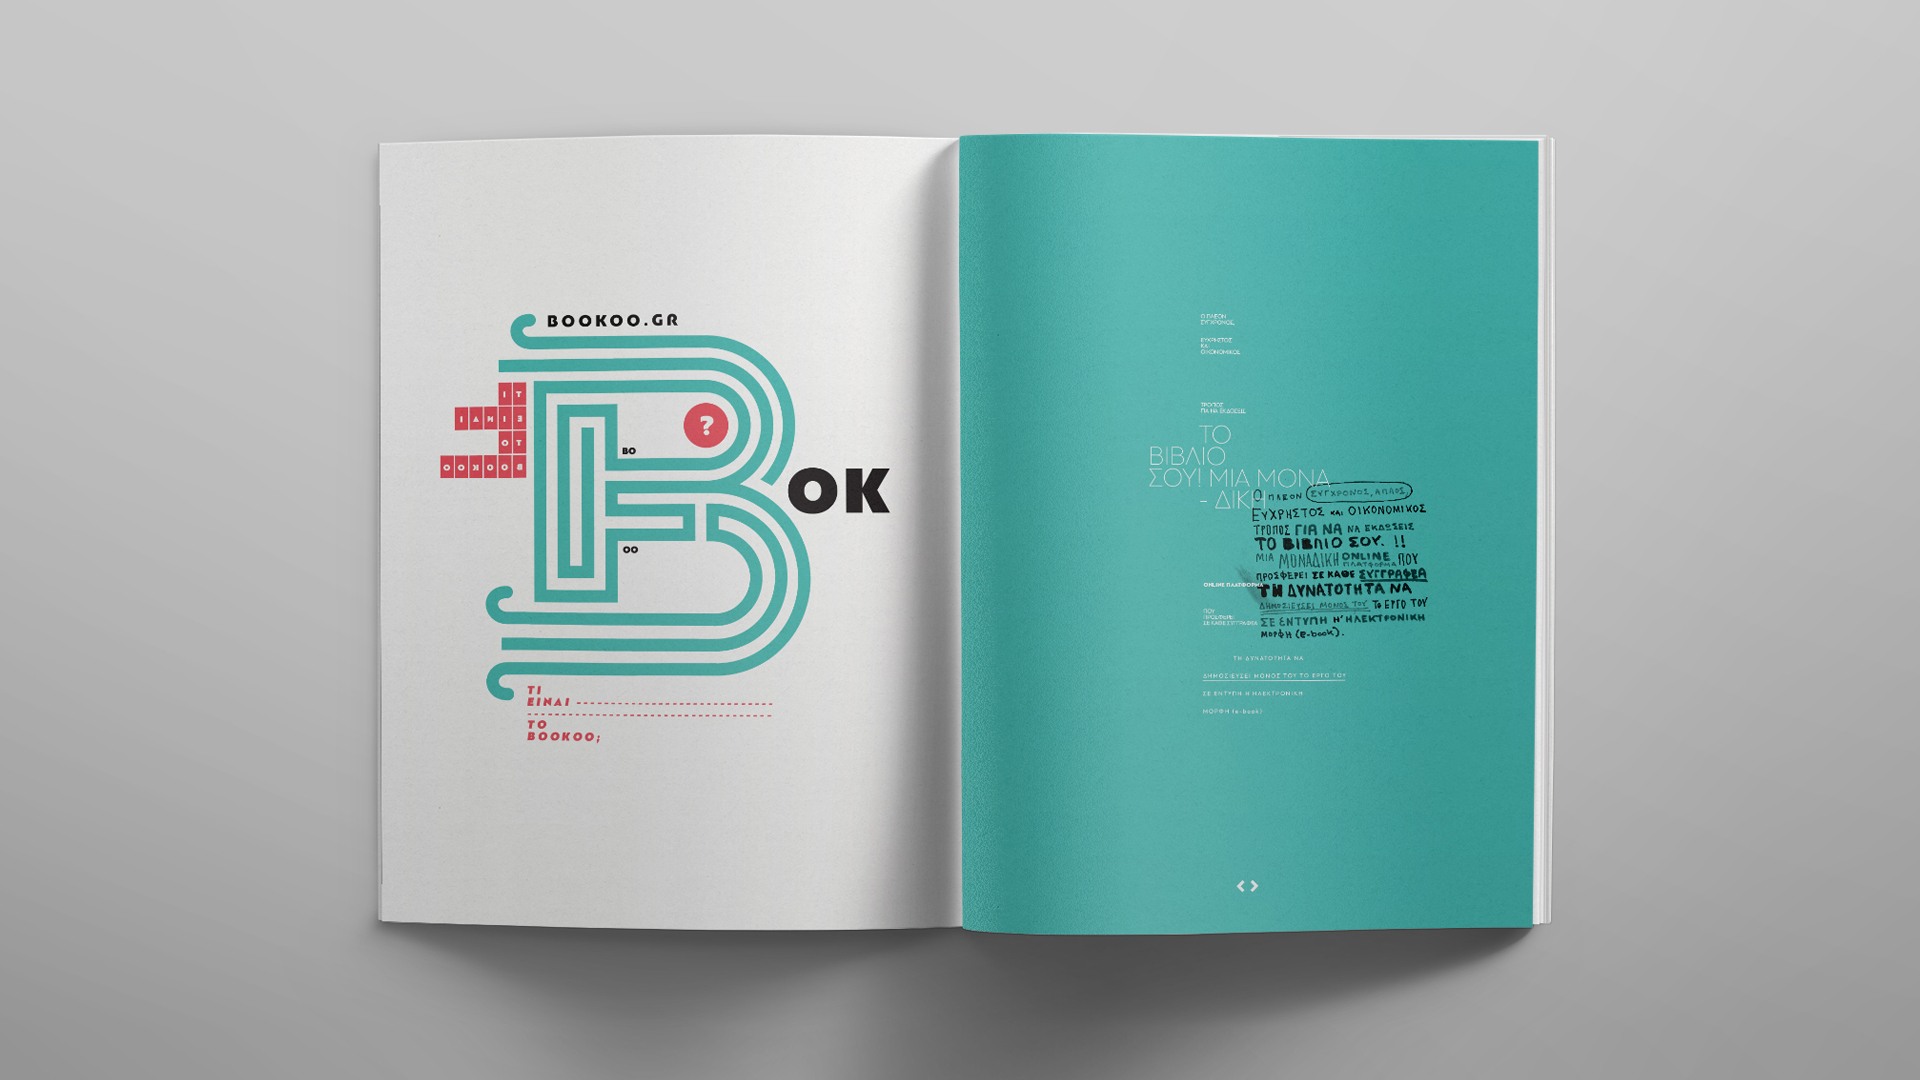 designpark_bookoo_press_kit_book_design